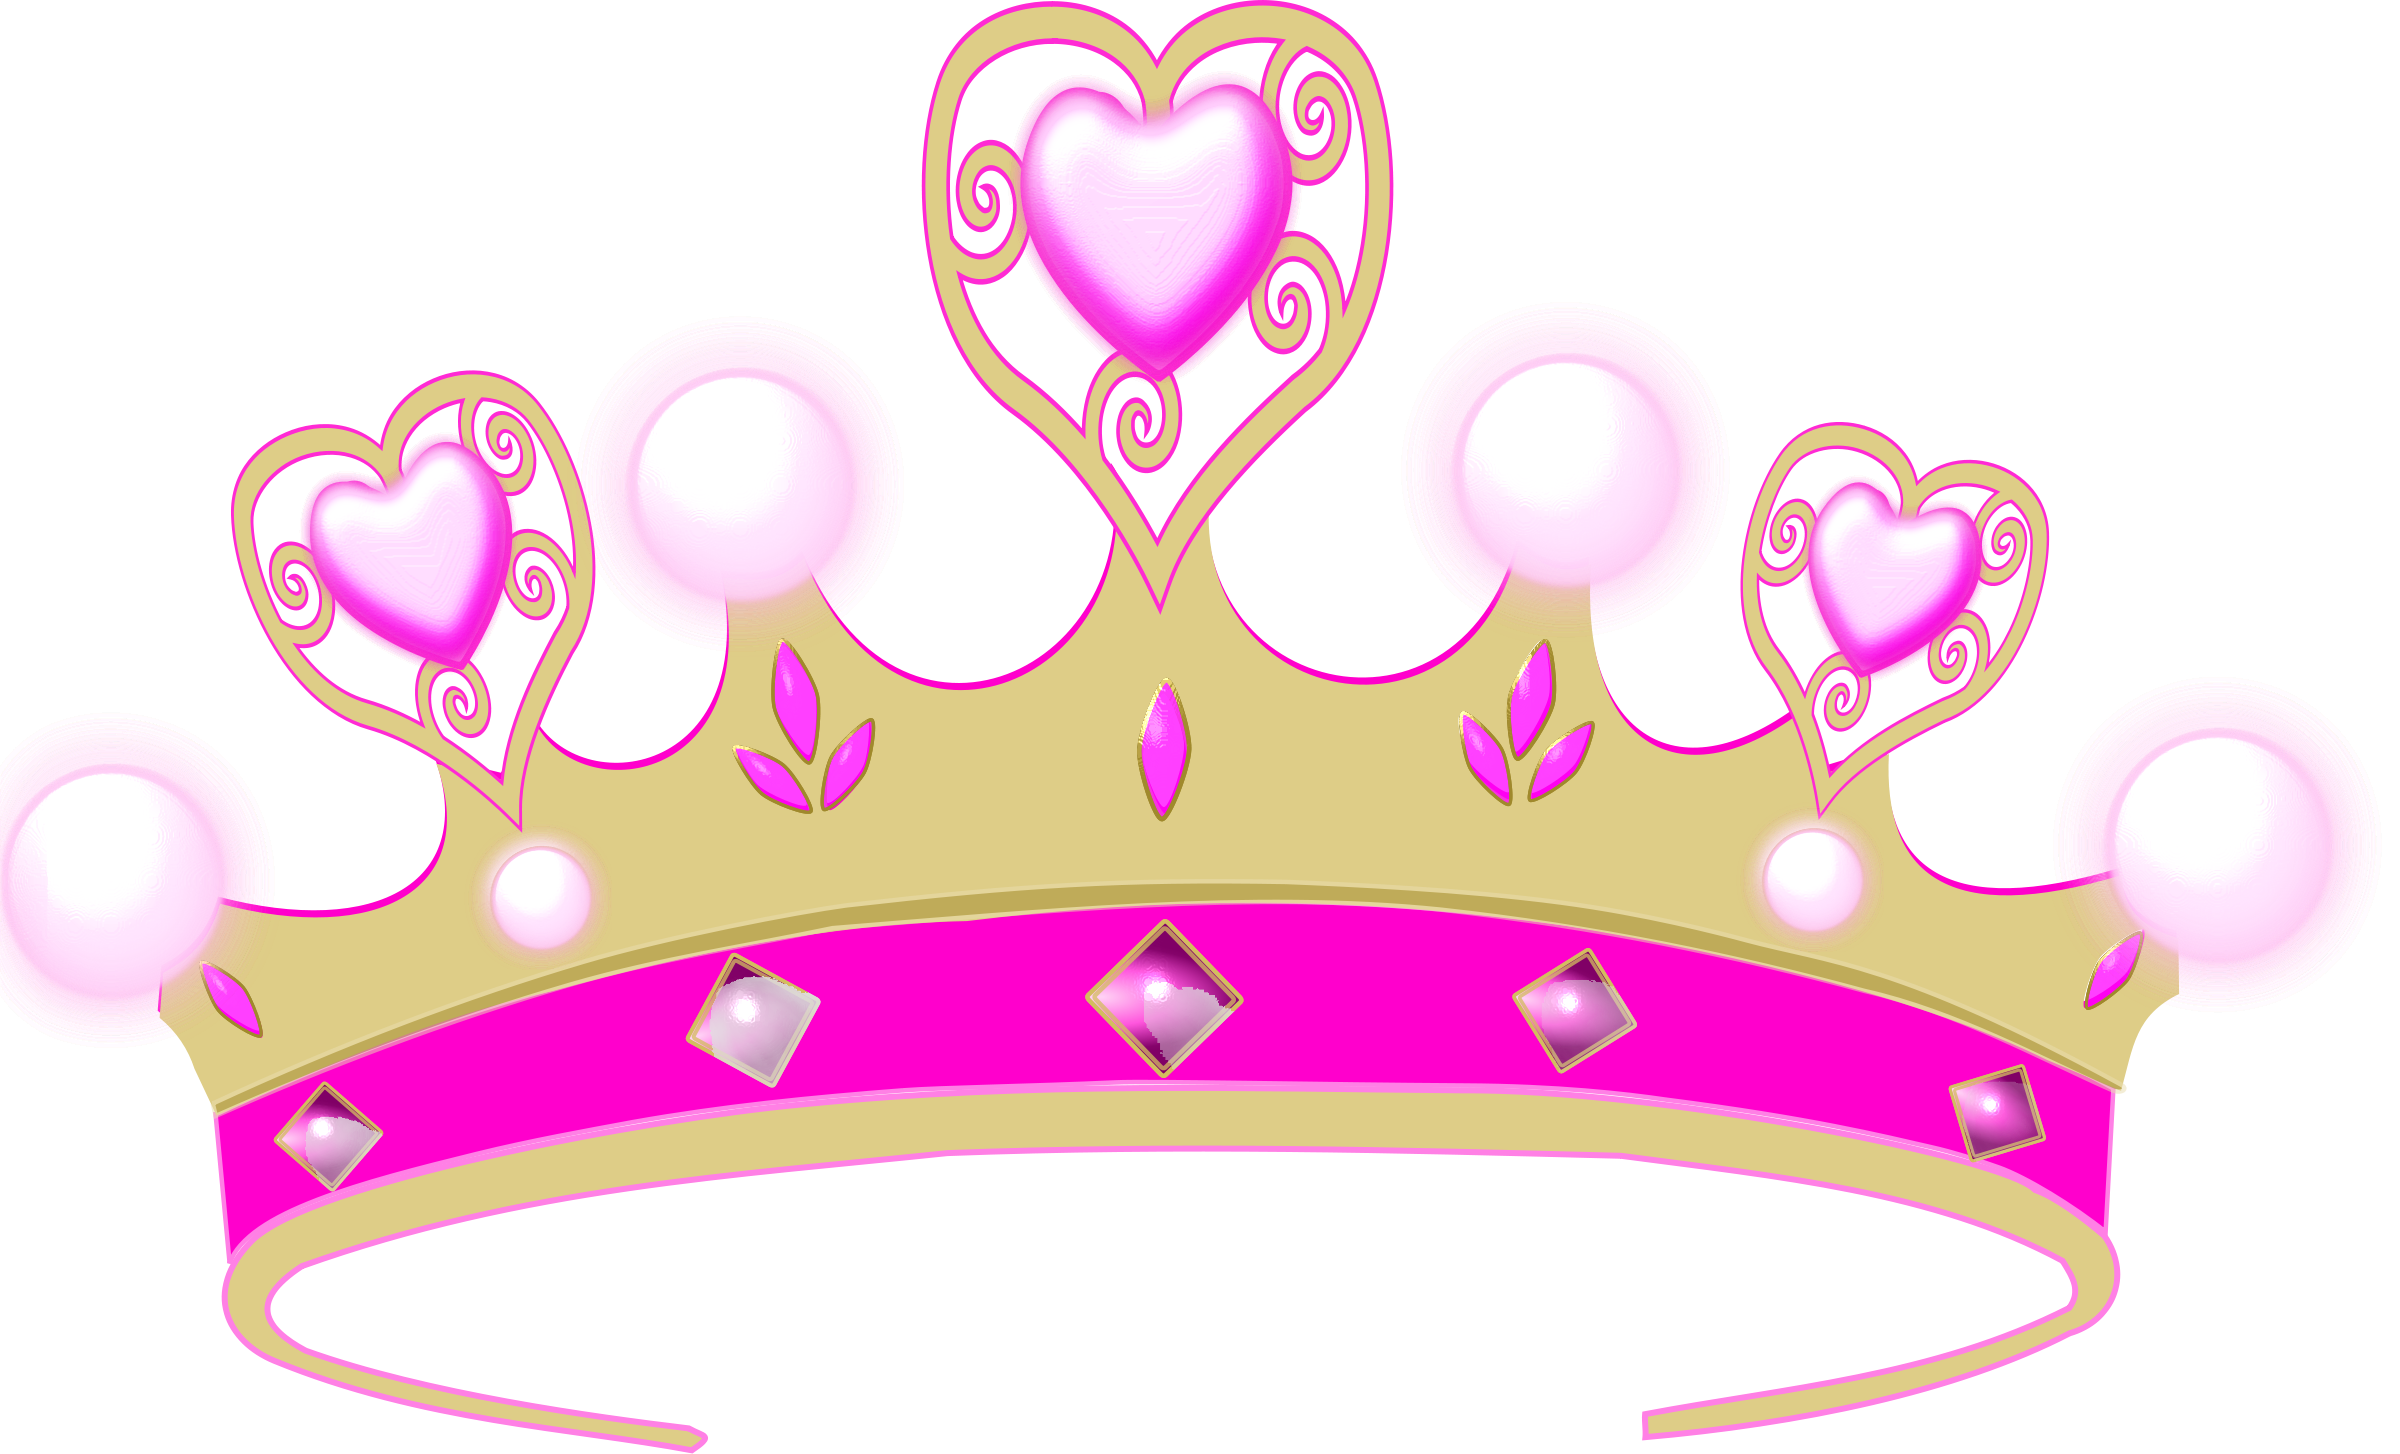 Pink princess crown clipart png svg free download 28+ Collection of Crown Clipart Pink | High quality, free cliparts ... svg free download